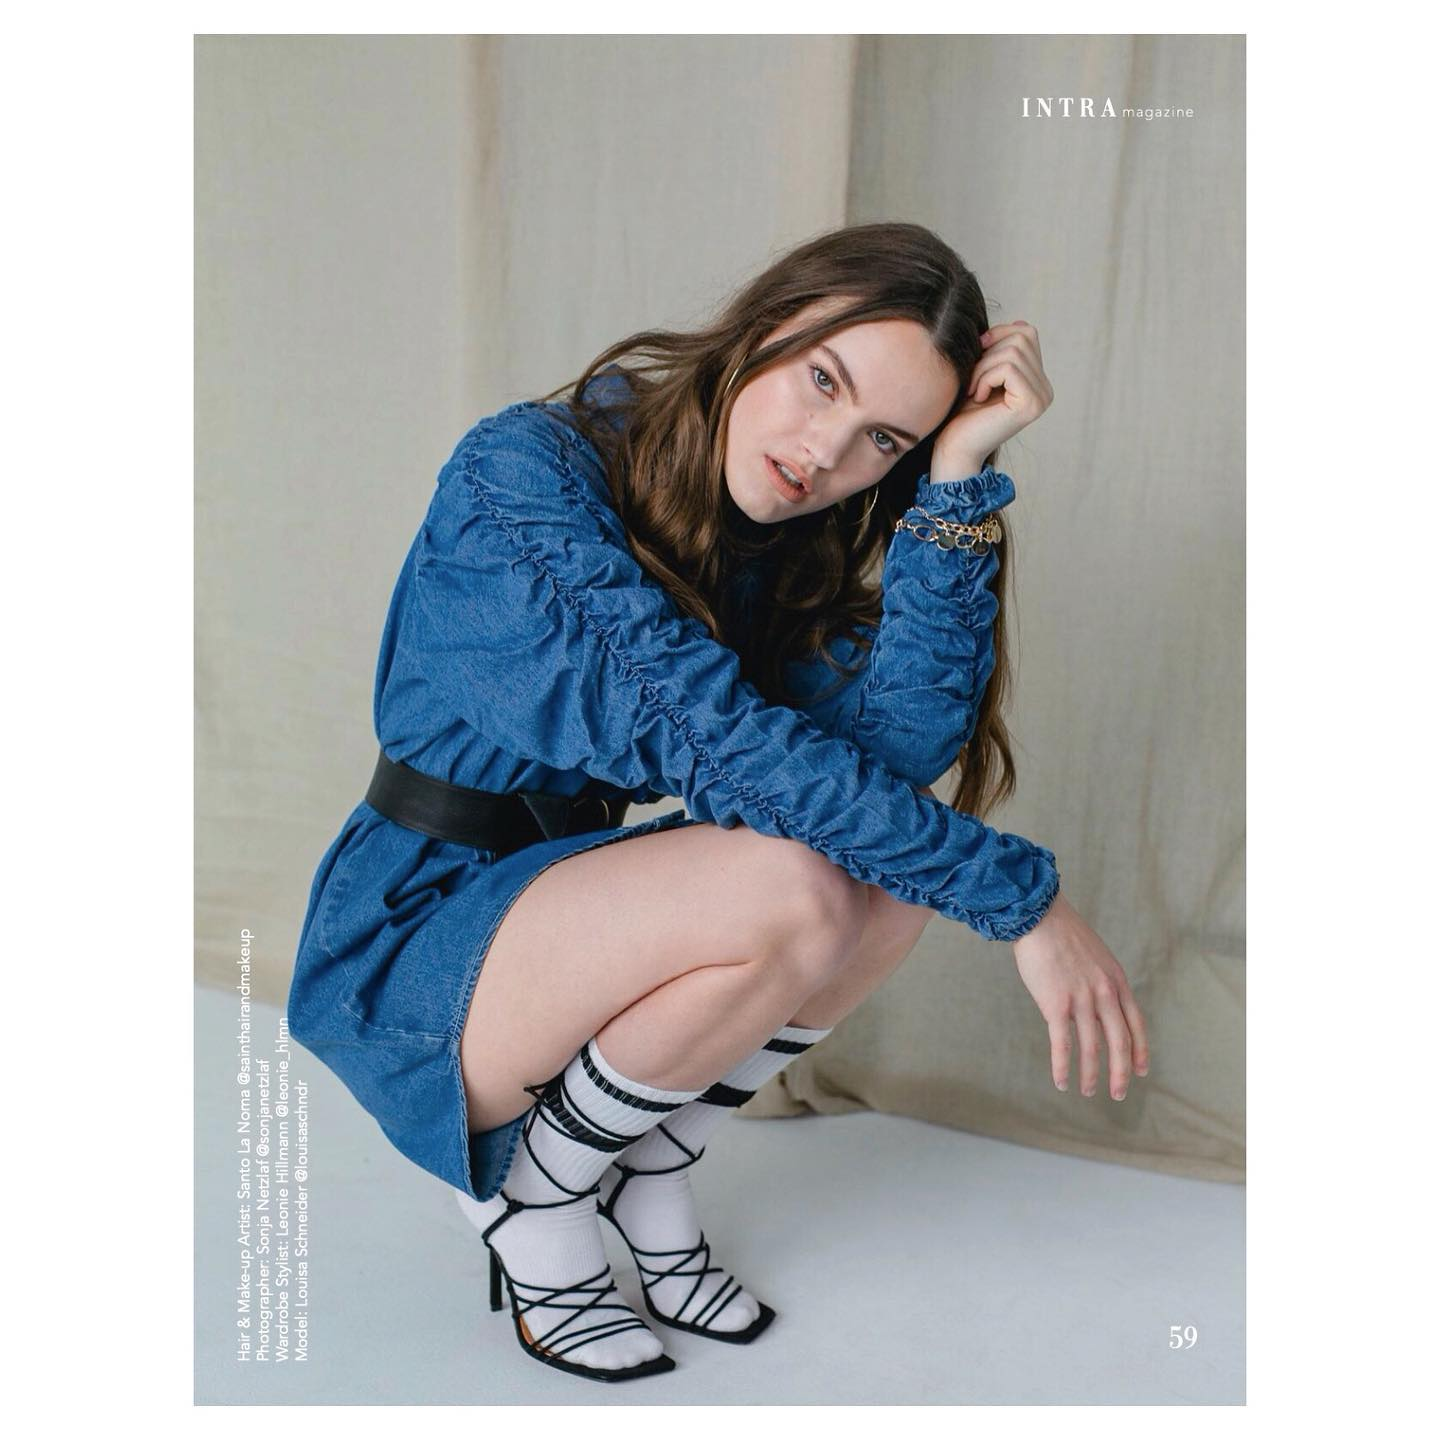 The Denim Way with @louisaschndr